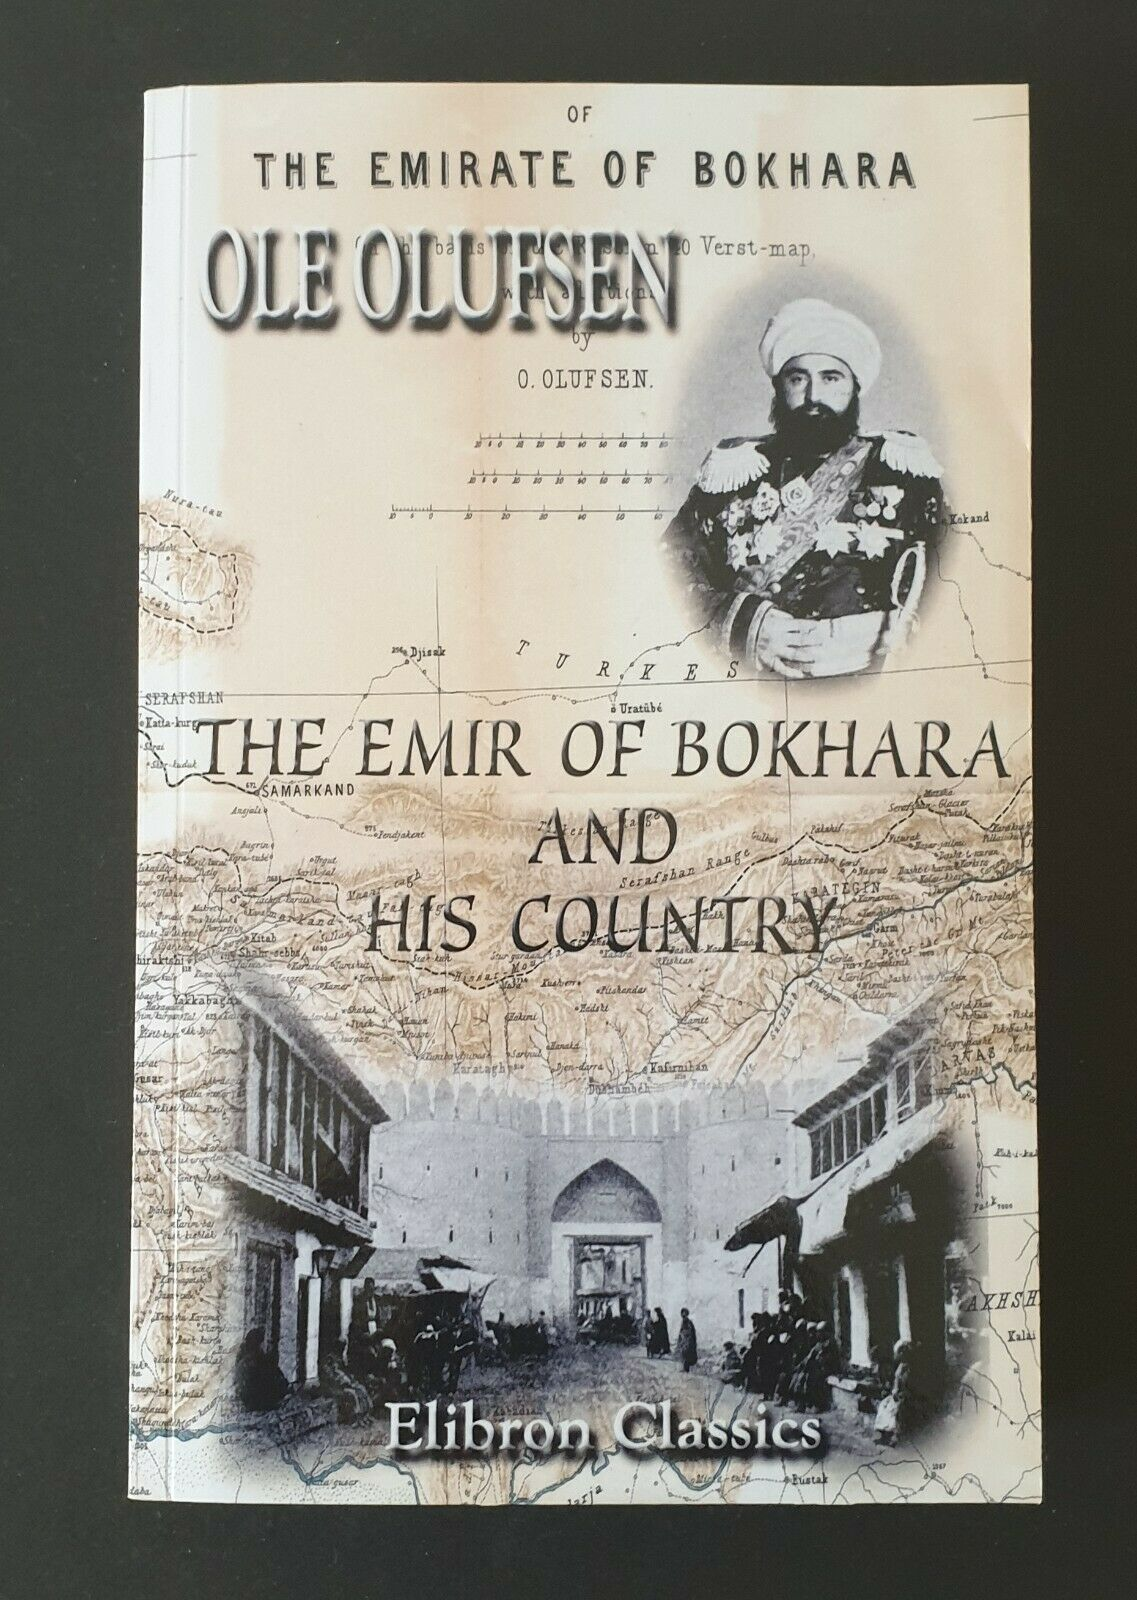 Ole Olufsen - The Emir Of Bokhara And His Country 2005 - sehr guter Zustand